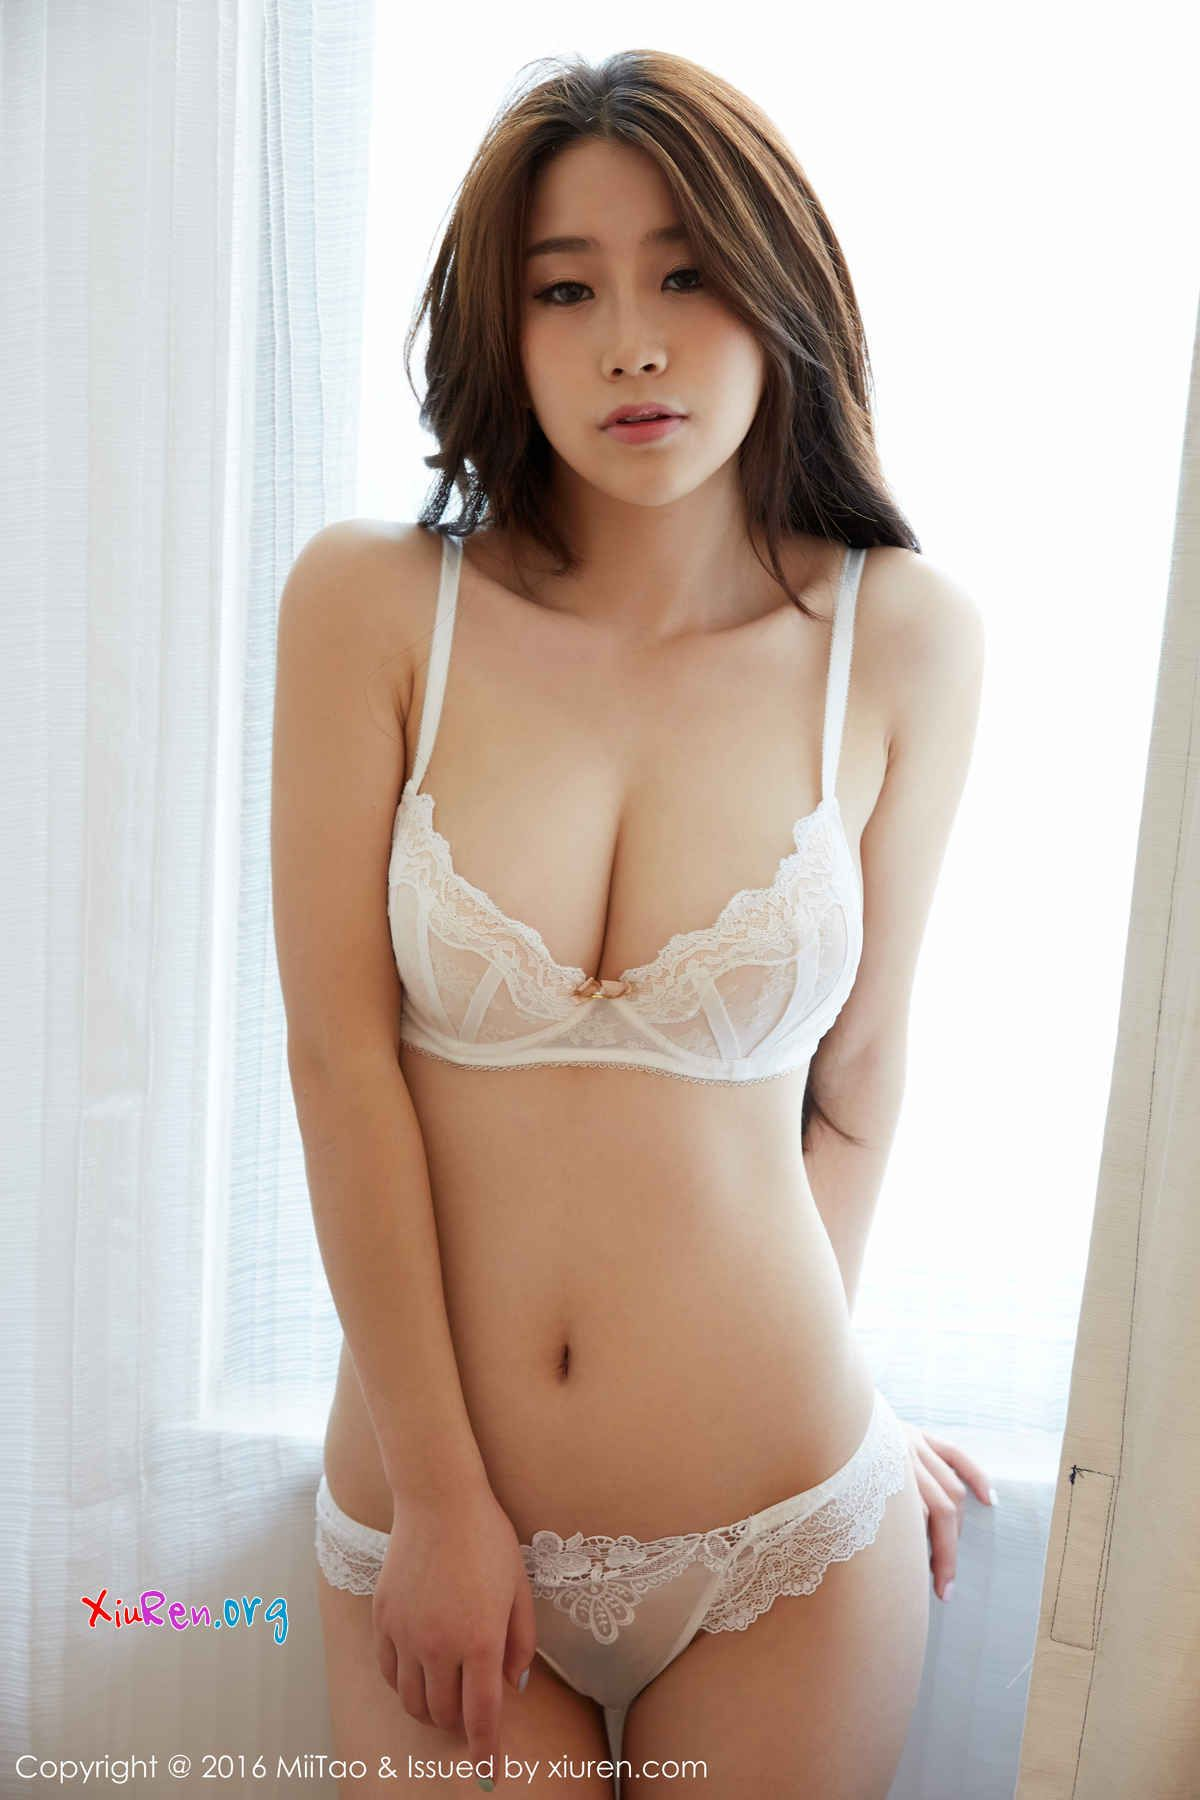 Pity, asian women in see through lingerie